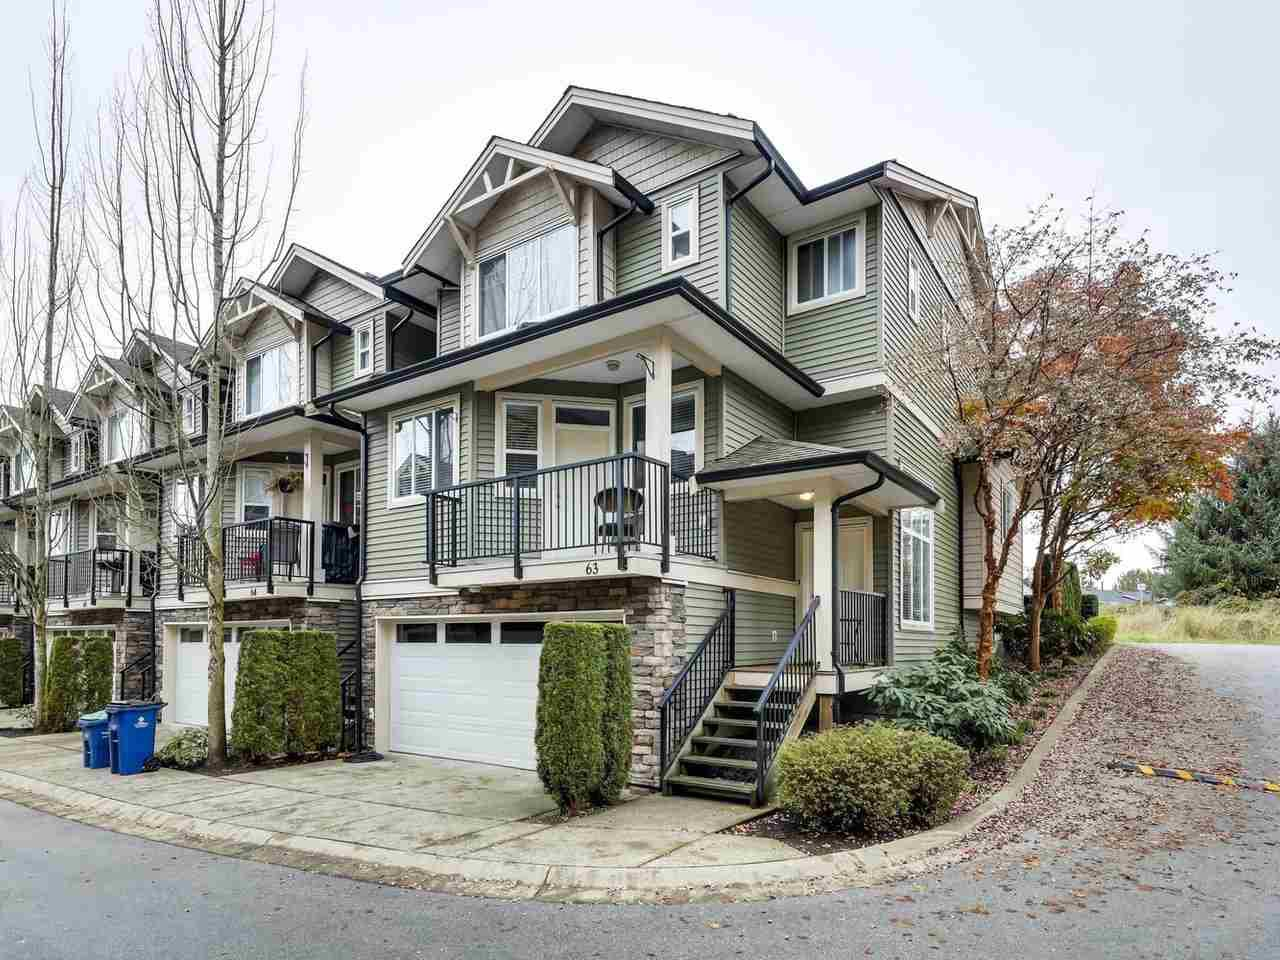 """Main Photo: 63 11720 COTTONWOOD Drive in Maple Ridge: Cottonwood MR Townhouse for sale in """"Cottonwood Green"""" : MLS®# R2517558"""